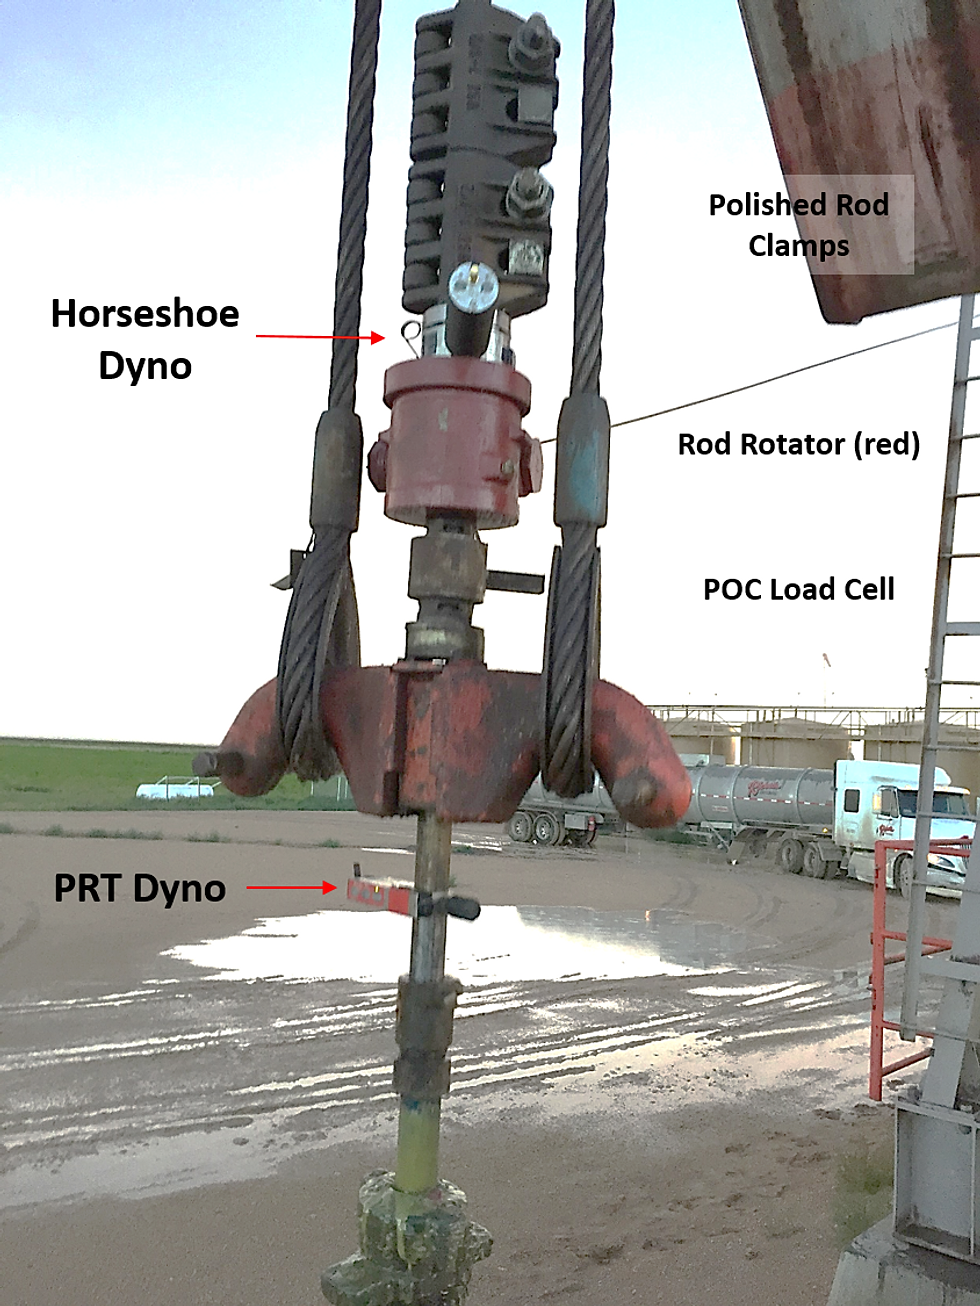 Dynamometer Load Cell : Oilfield rod pumping images dyno card interpretation